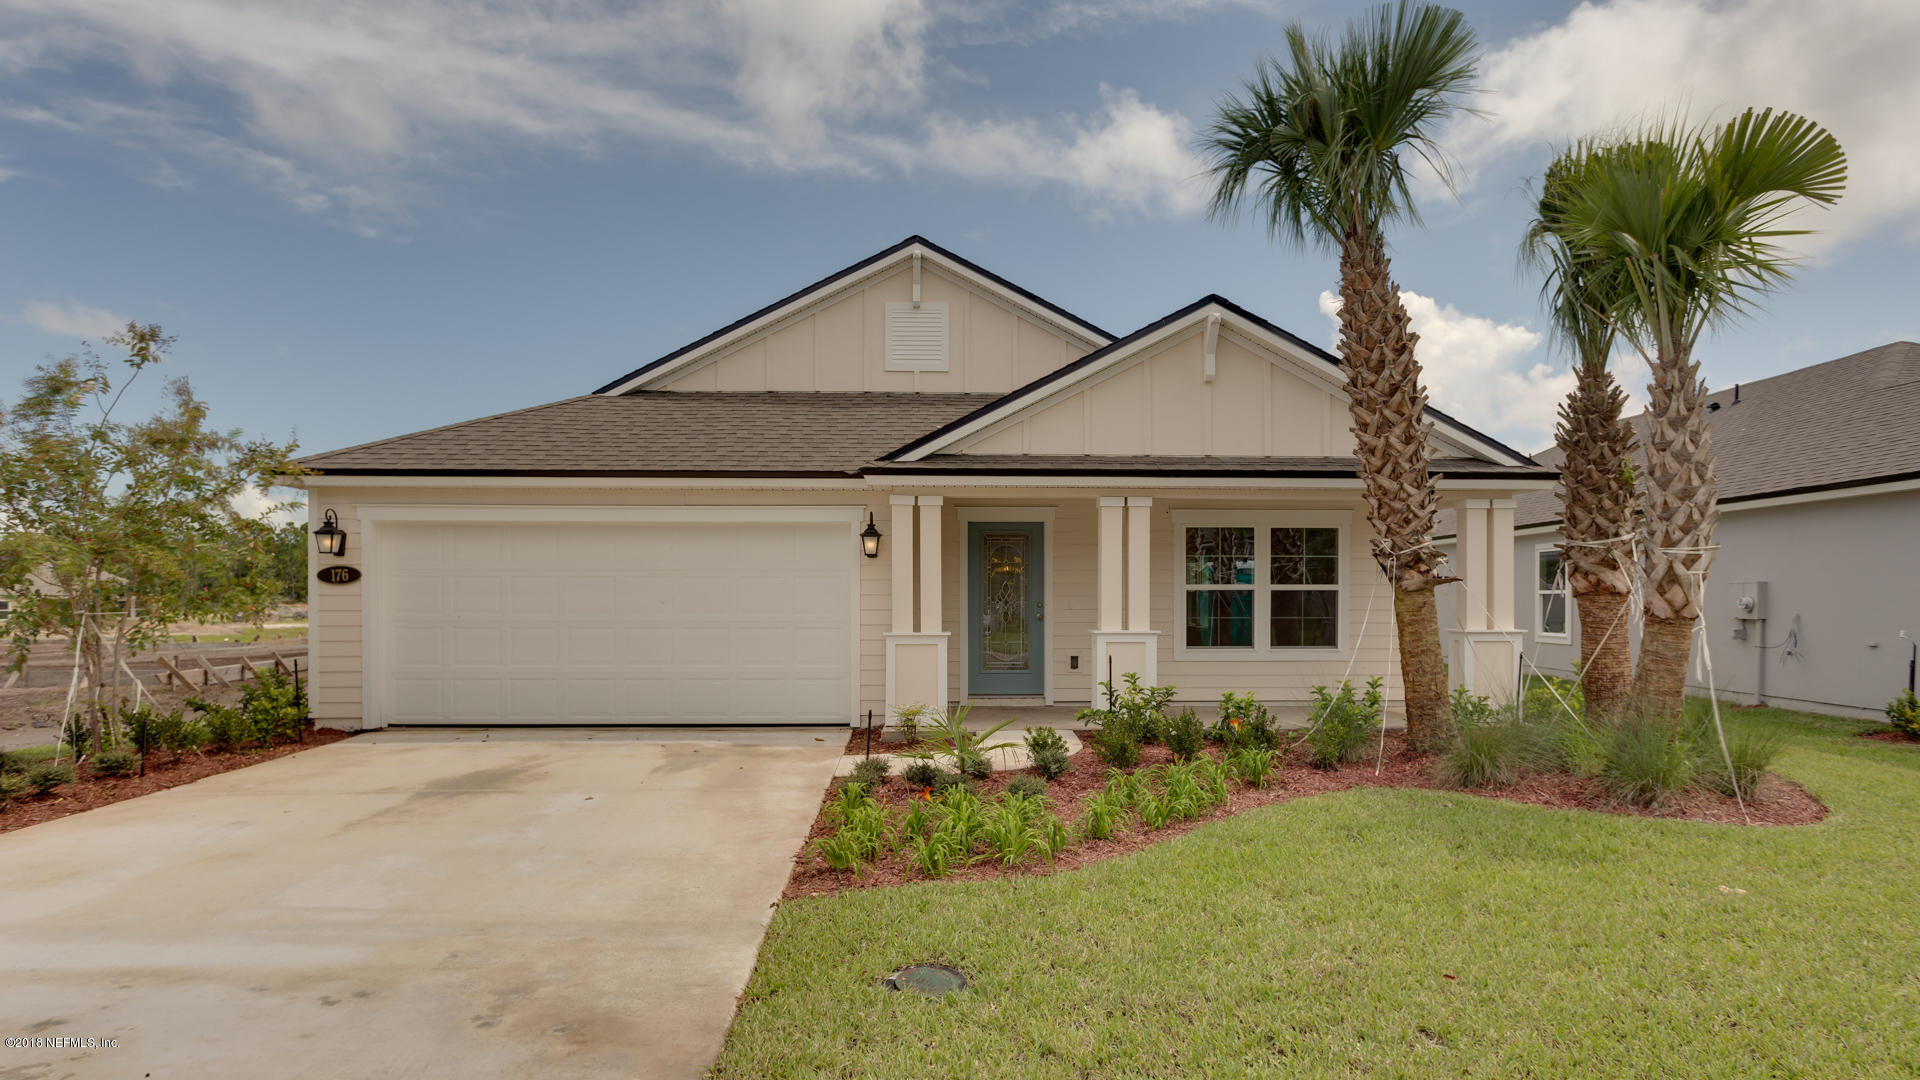 176 PICKETT, ST AUGUSTINE, FLORIDA 32084, 3 Bedrooms Bedrooms, ,2 BathroomsBathrooms,Residential - single family,For sale,PICKETT,922984